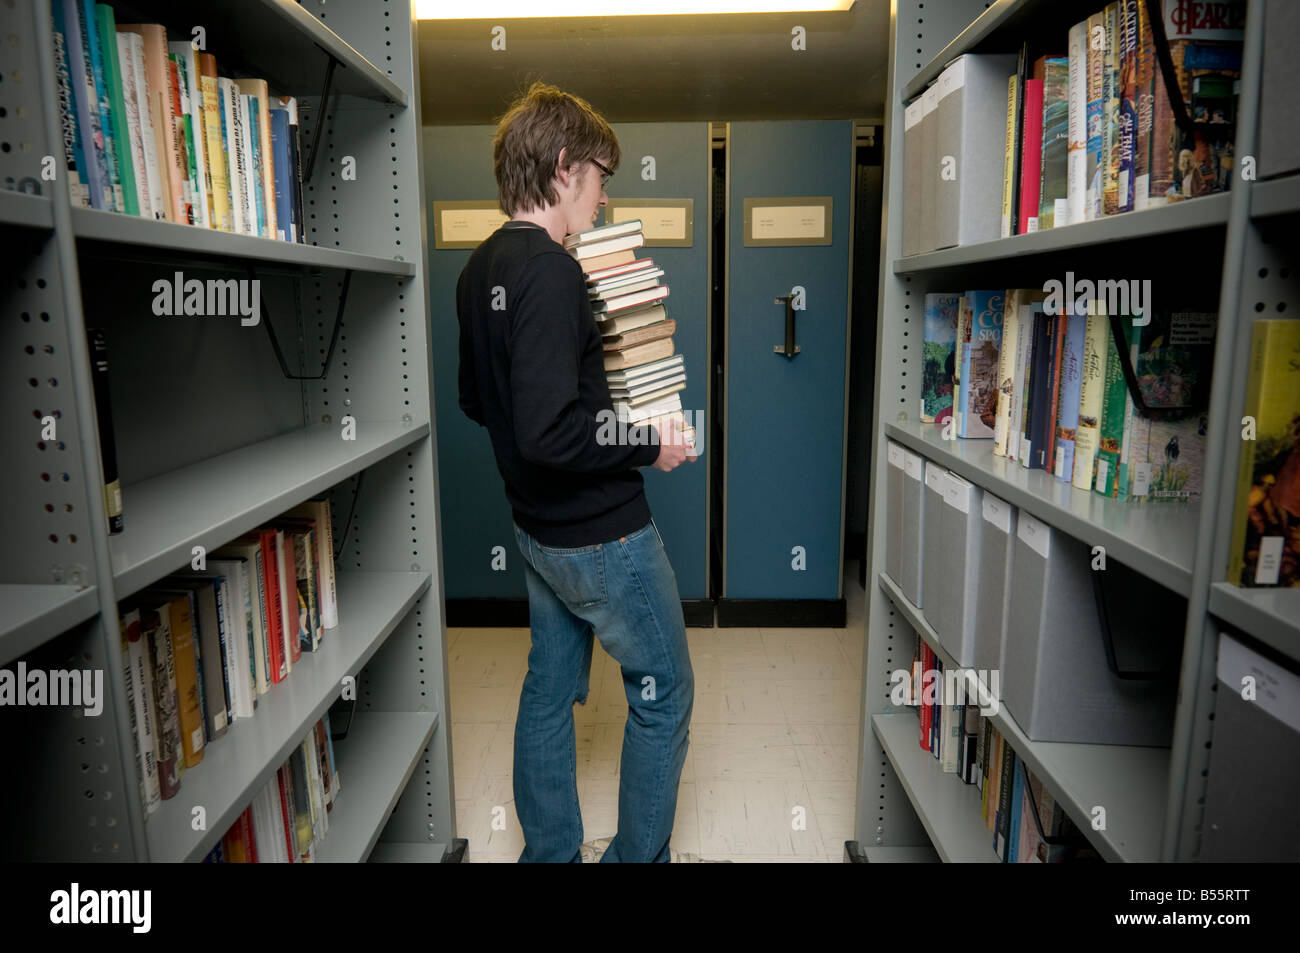 Man collecting books from the archives of the National Library of Wales Aberystwyth to take them to be scanned and - Stock Image